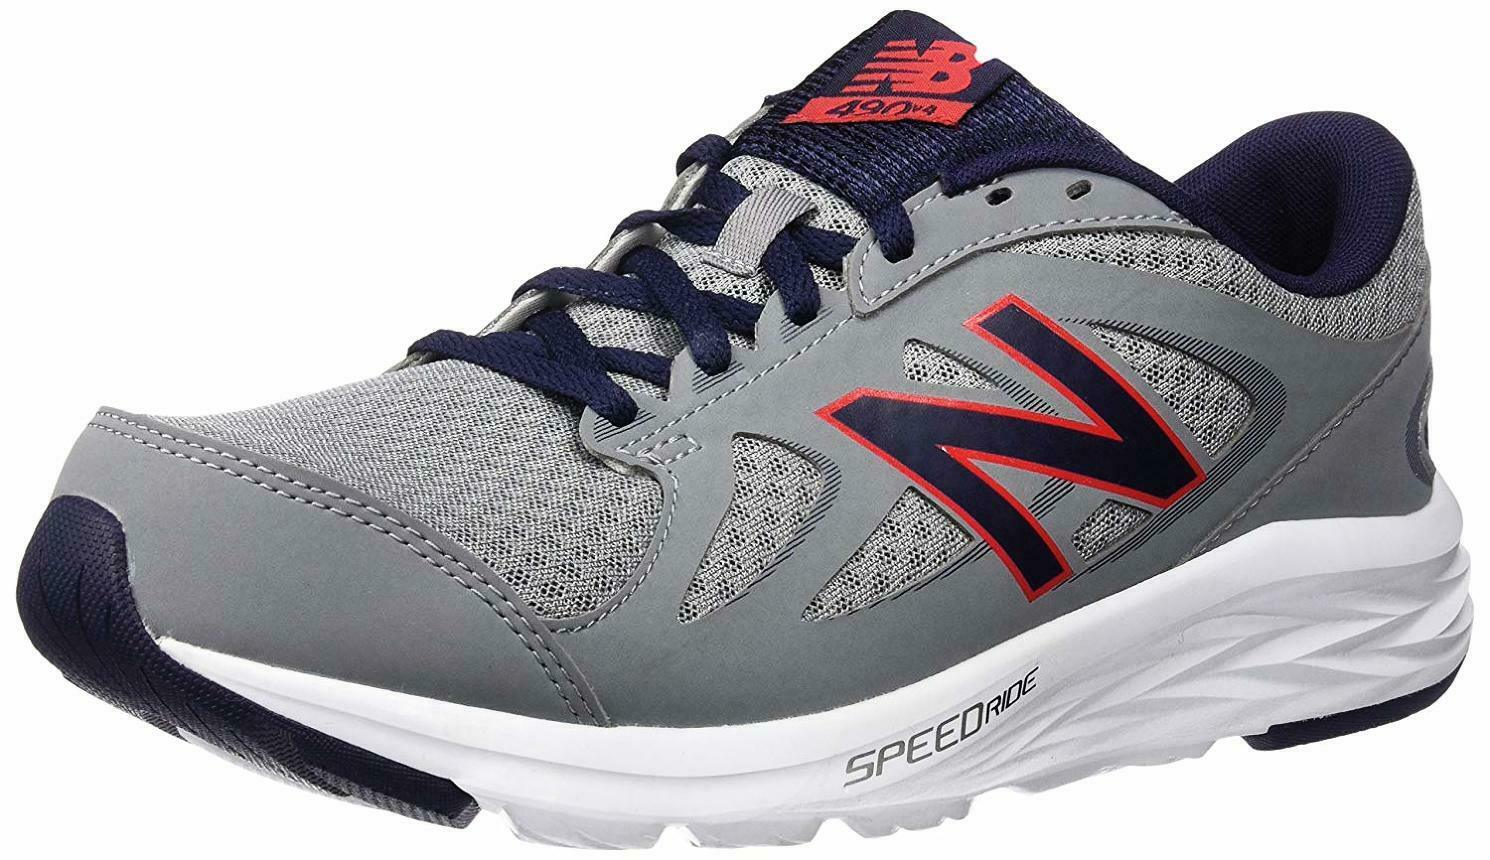 New Balance Men's M490v4 Running shoes